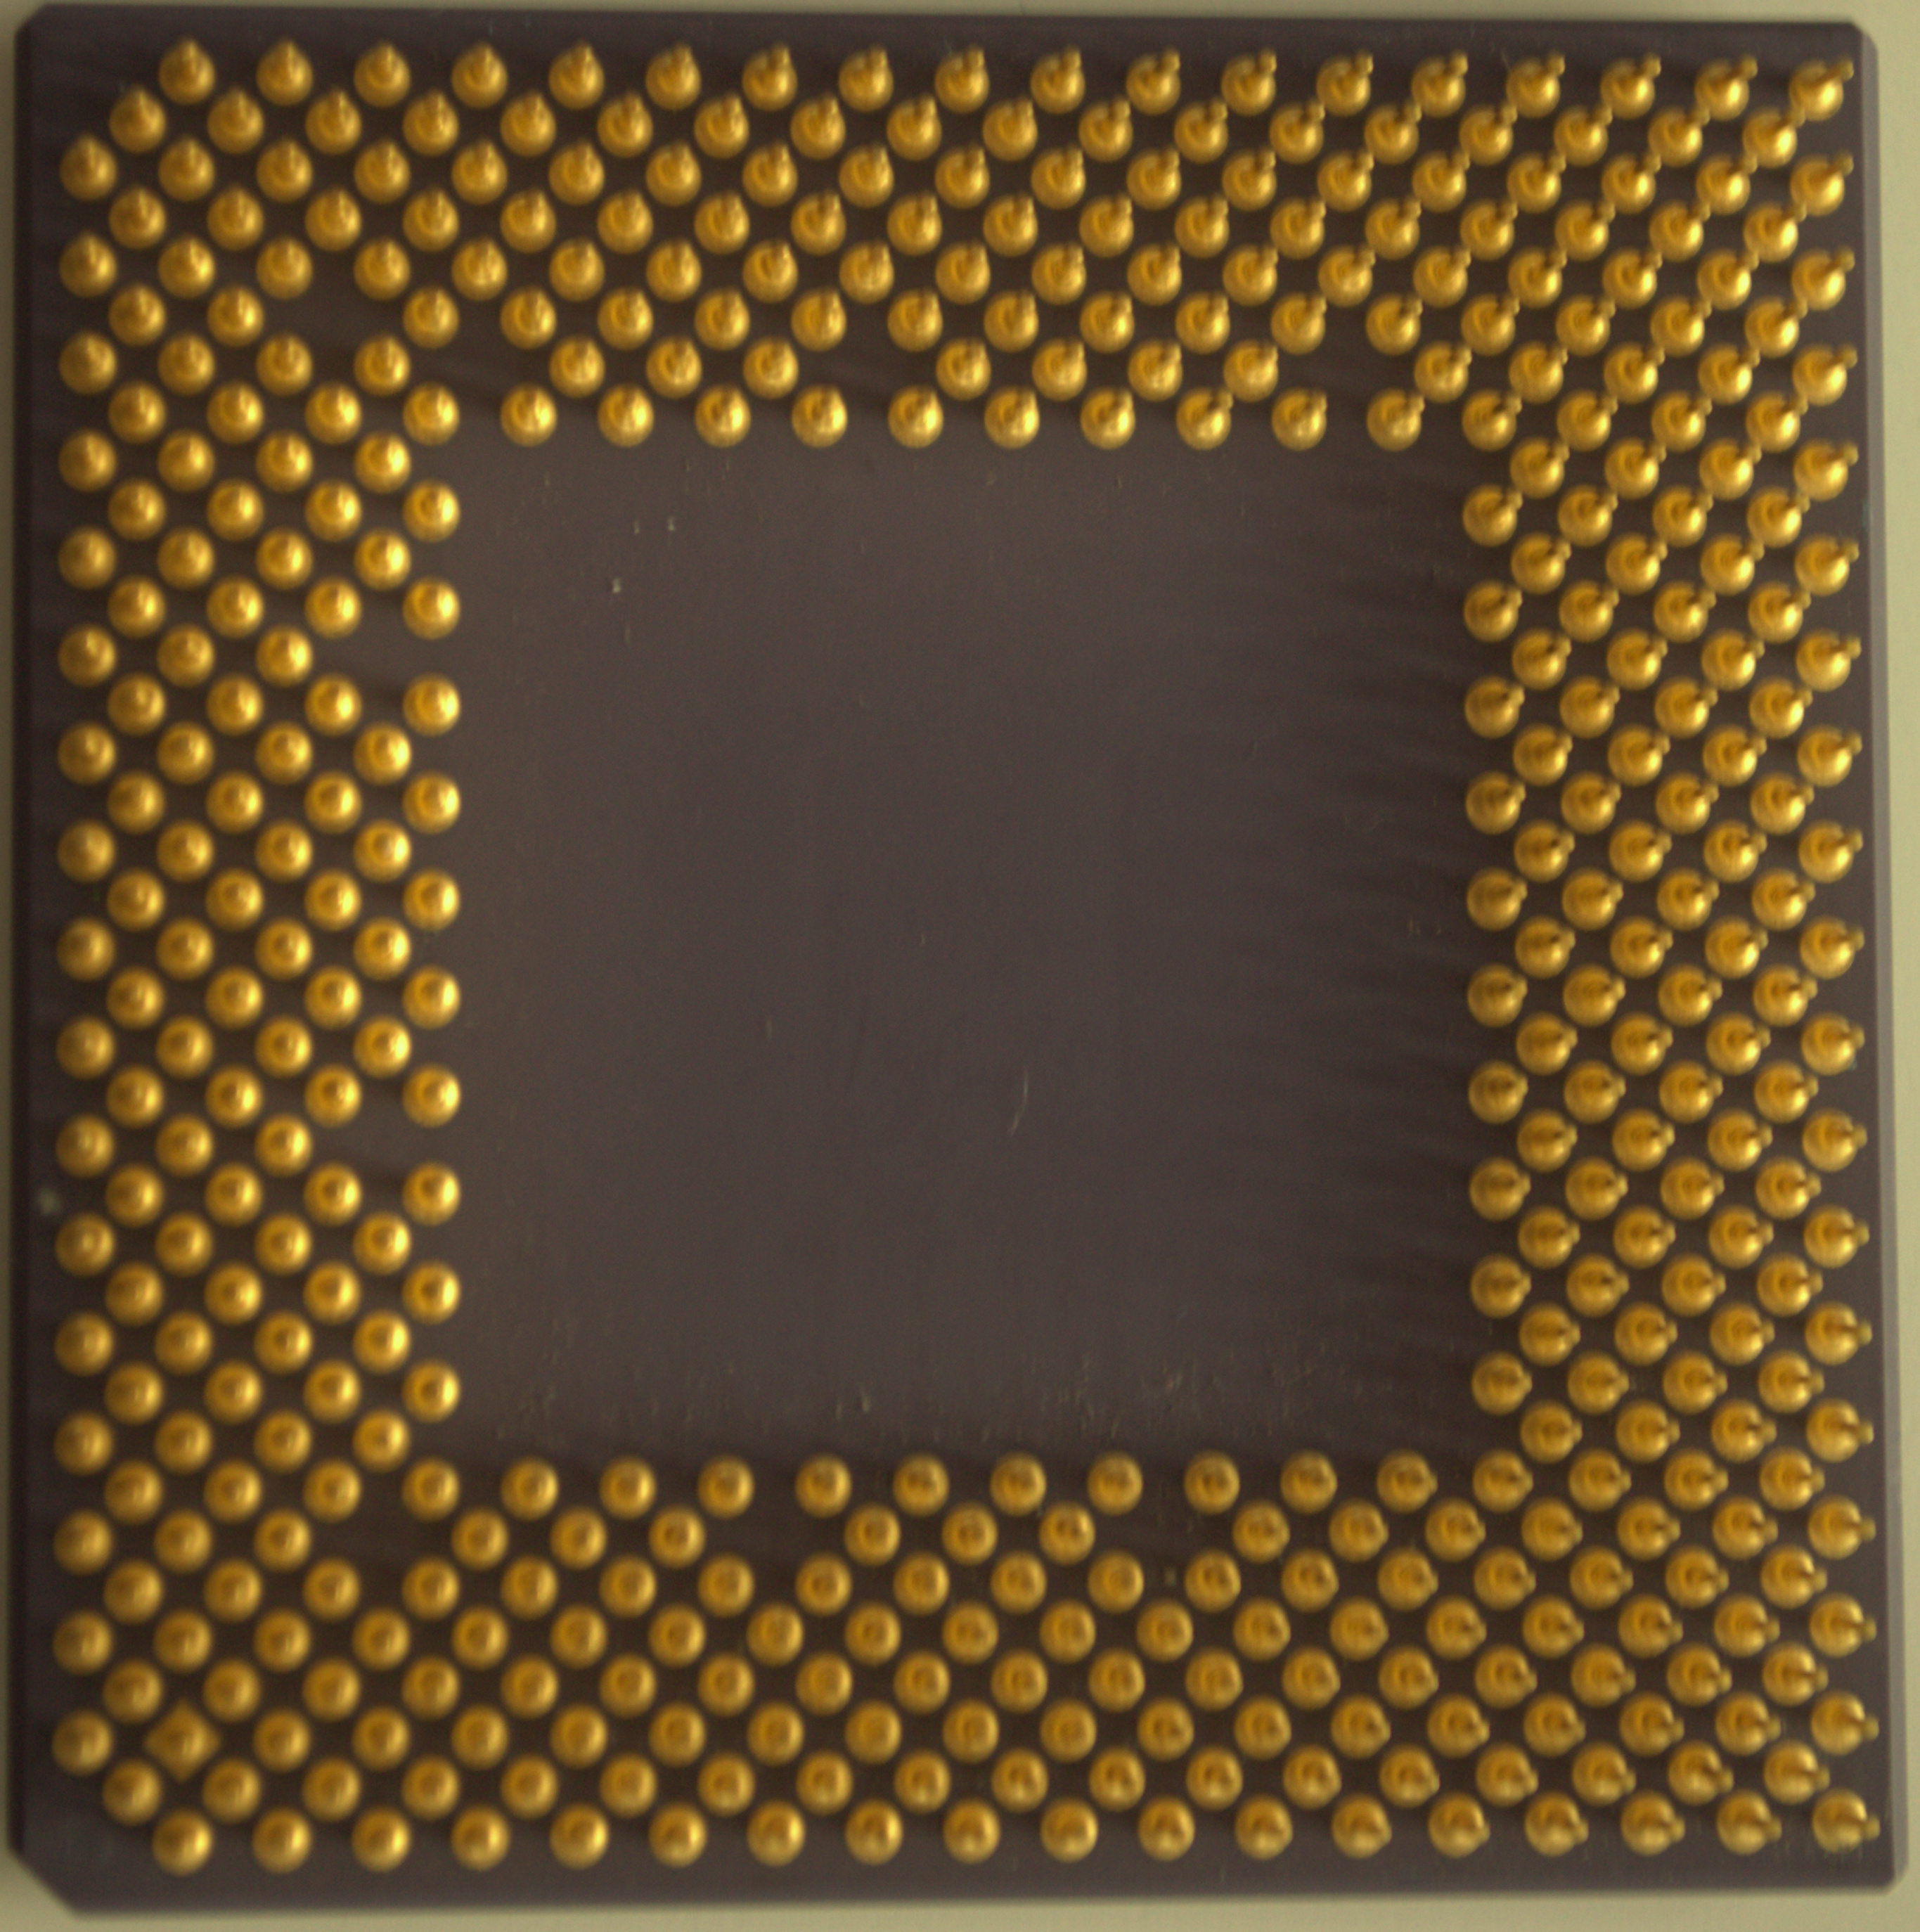 a7bc72a5581 File Underside of an 800 MHz Athlon CPU.jpg - Wikimedia Commons